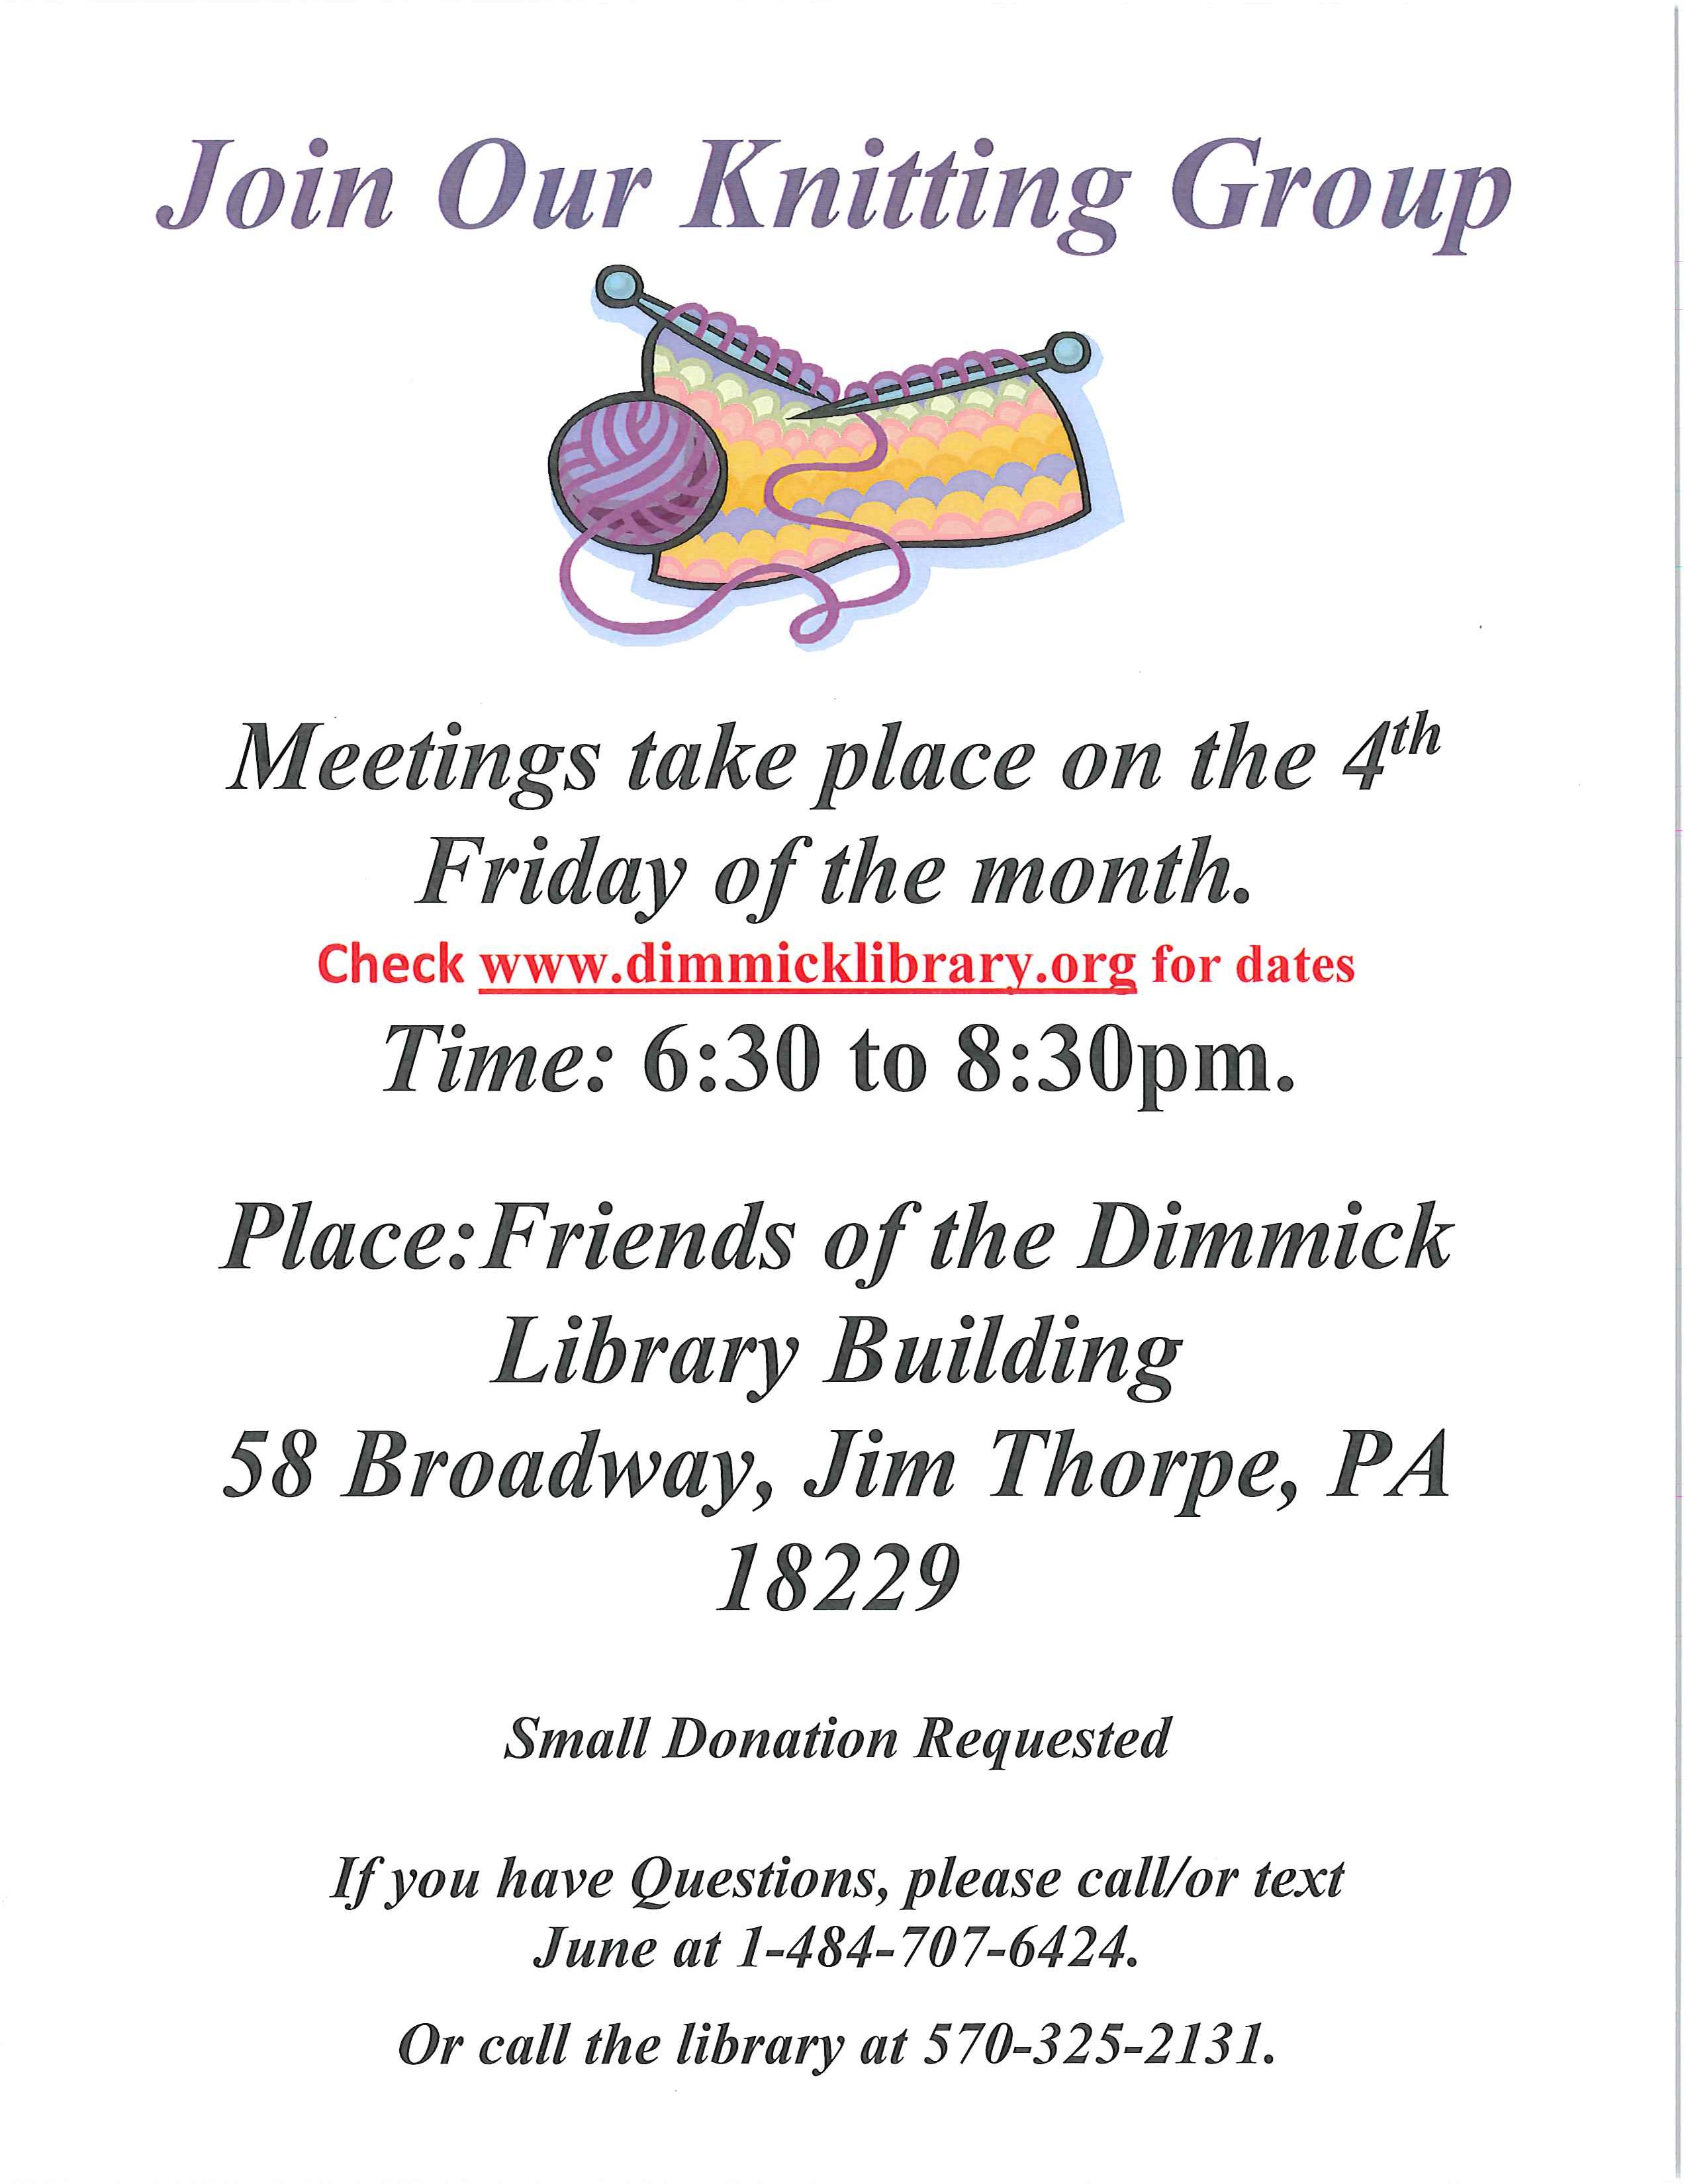 Knitting Club Flyer : Dimmick memorial library knitting group flyer